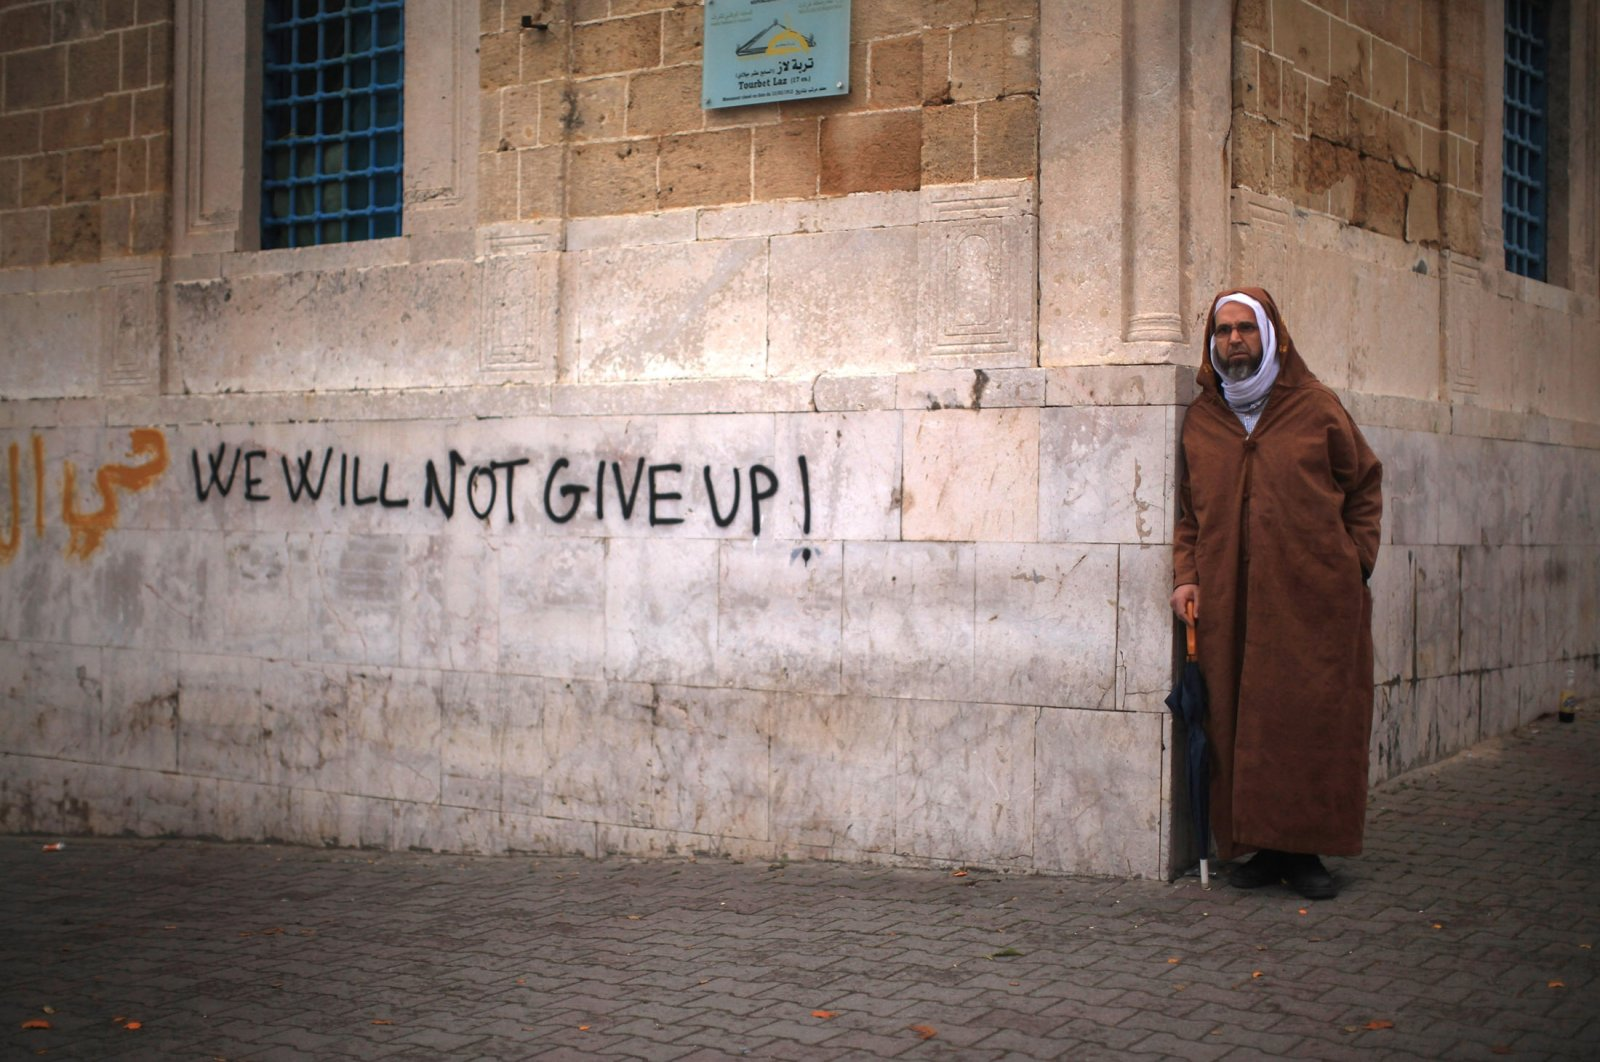 A Tunisian man looks on next to graffiti as protestors continue their demonstrations outside then-Prime Minister Mohammed Ghannouchi's offices in Tunis, Tunisia, Jan. 25, 2011. (Photo by Getty Images)